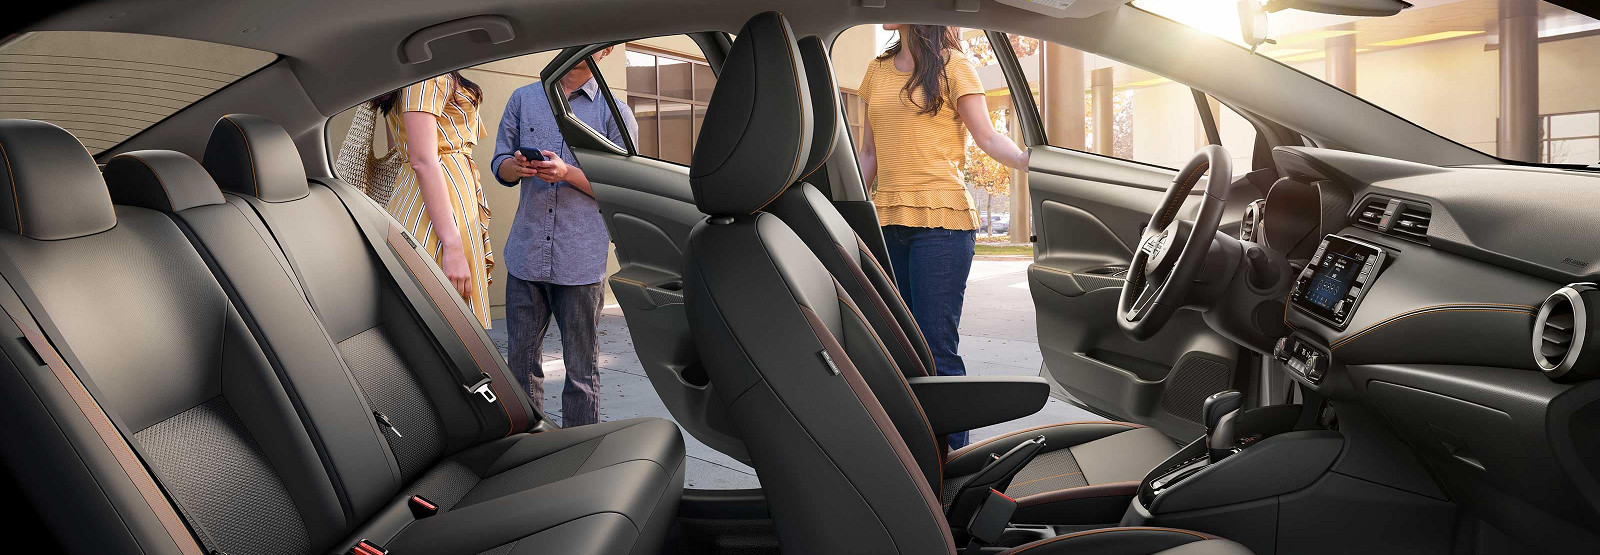 Refined Cabin of the 2020 Nissan Versa